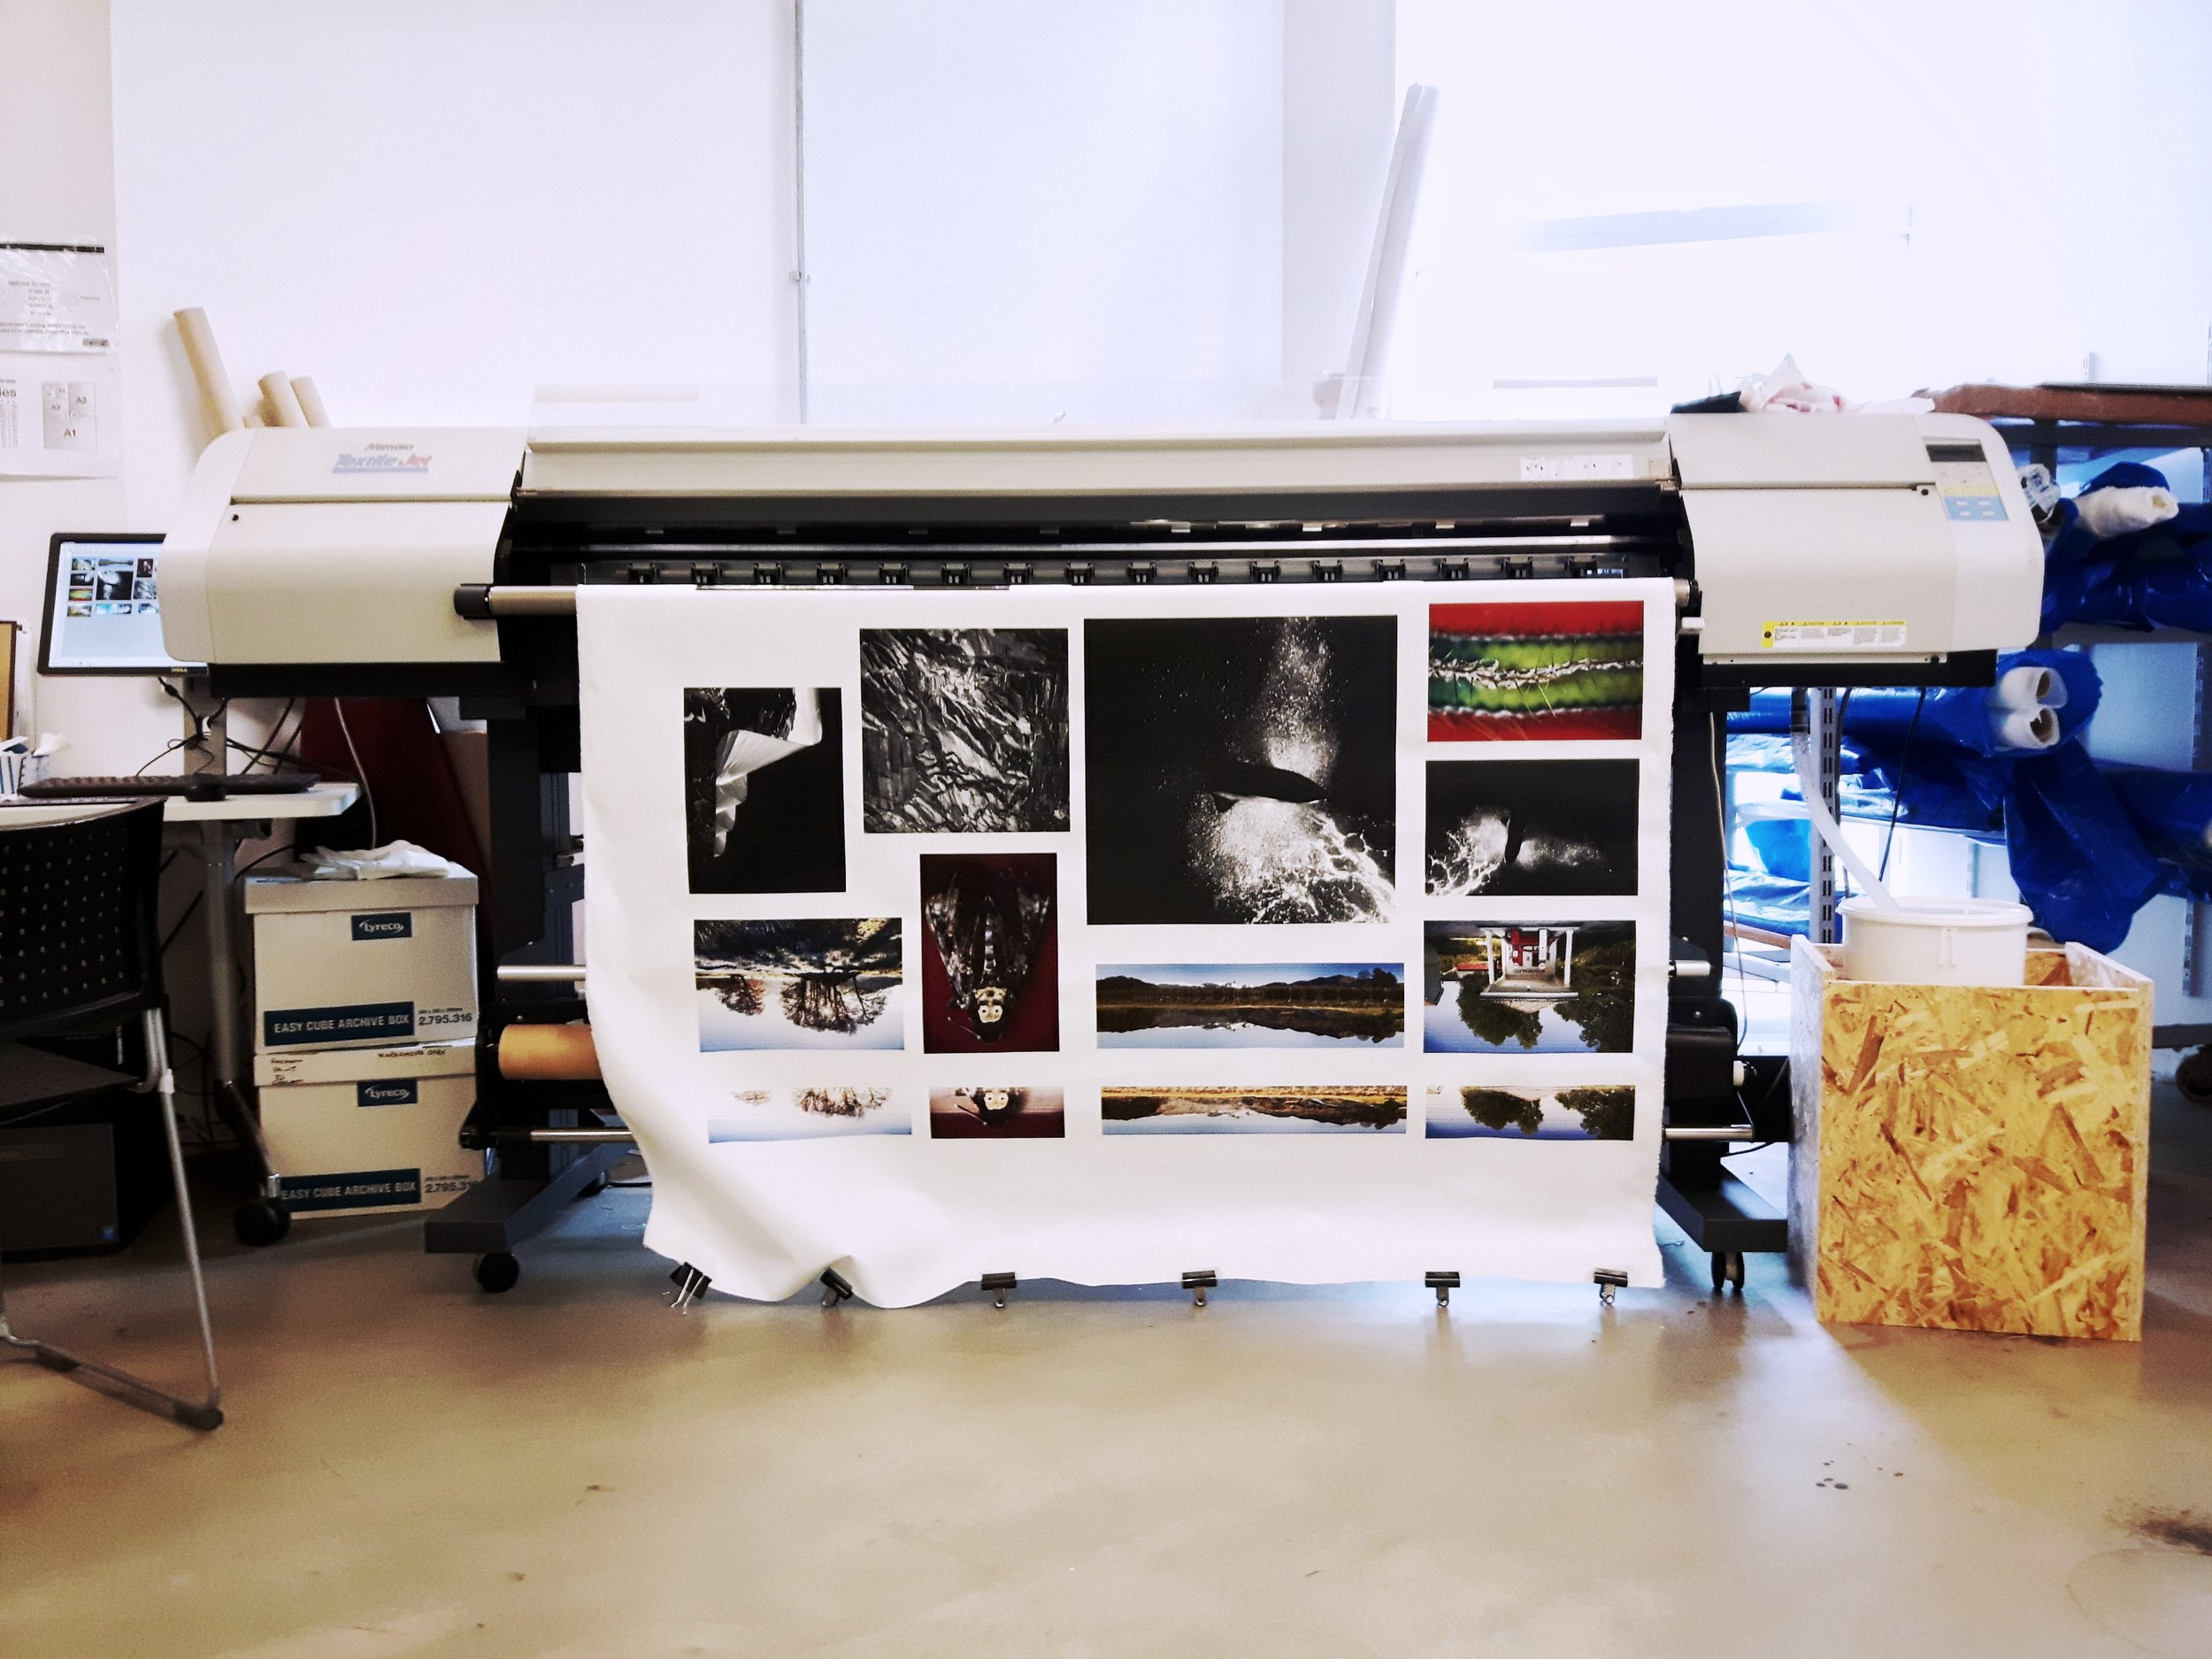 I was lucky to see the process behind fabric printing. It's always a treat to see your work in print and to learn about processes like this.